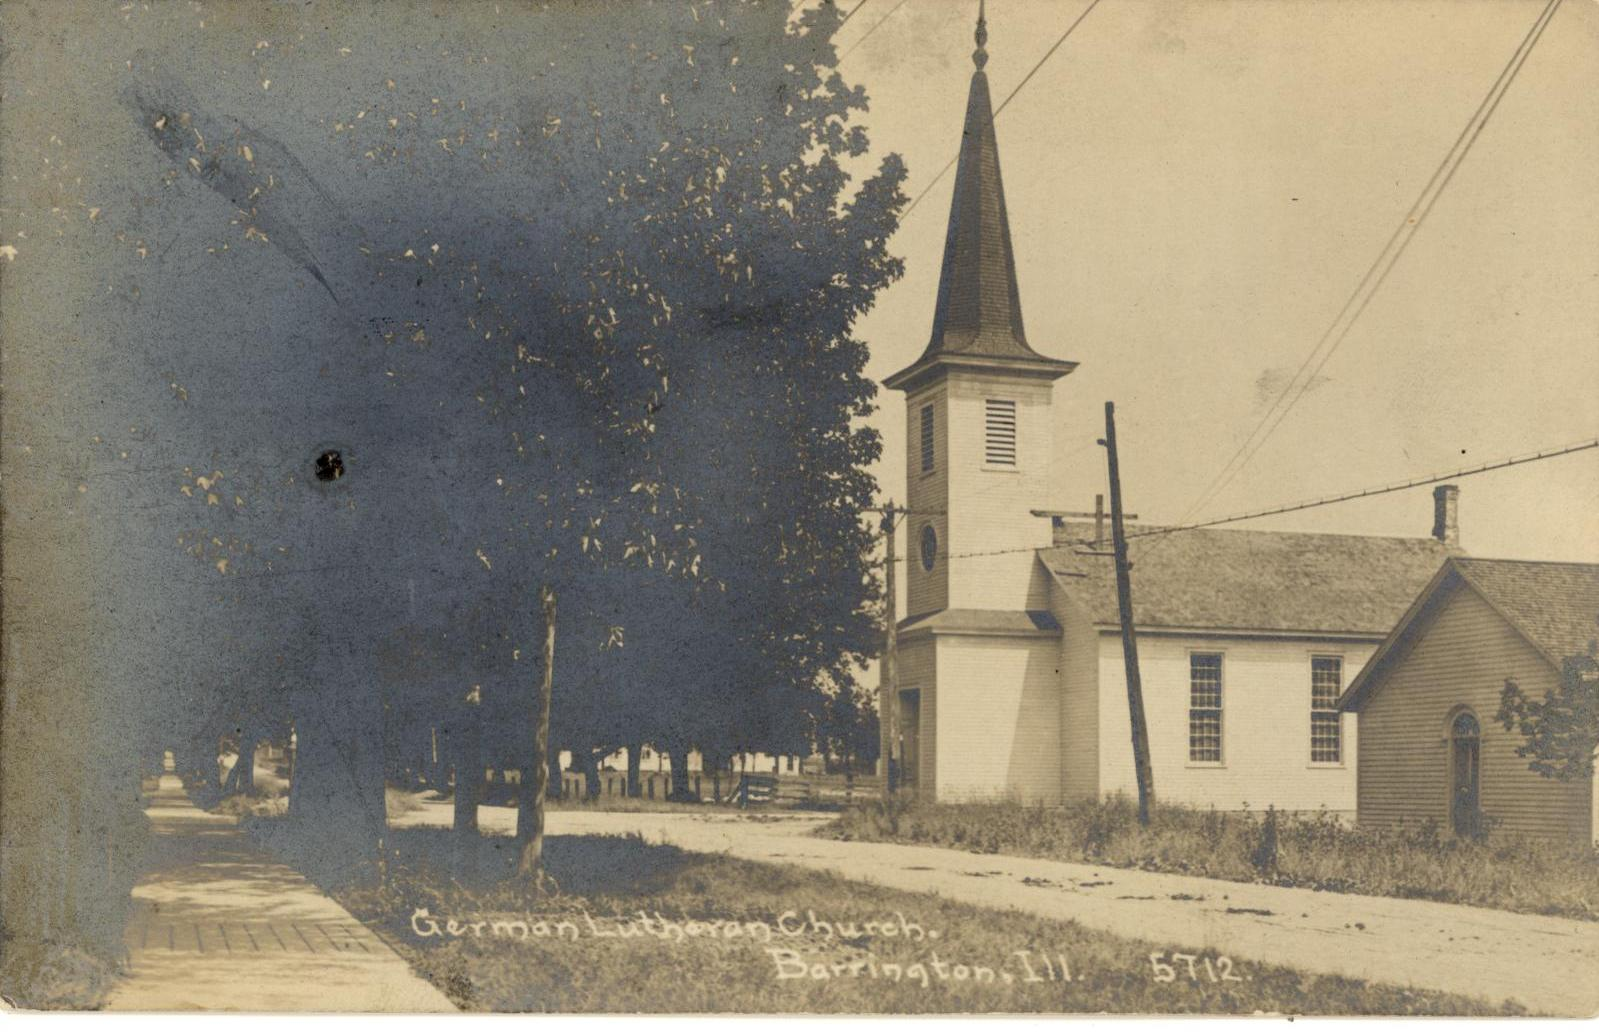 Cook Street Church from 1871-1931